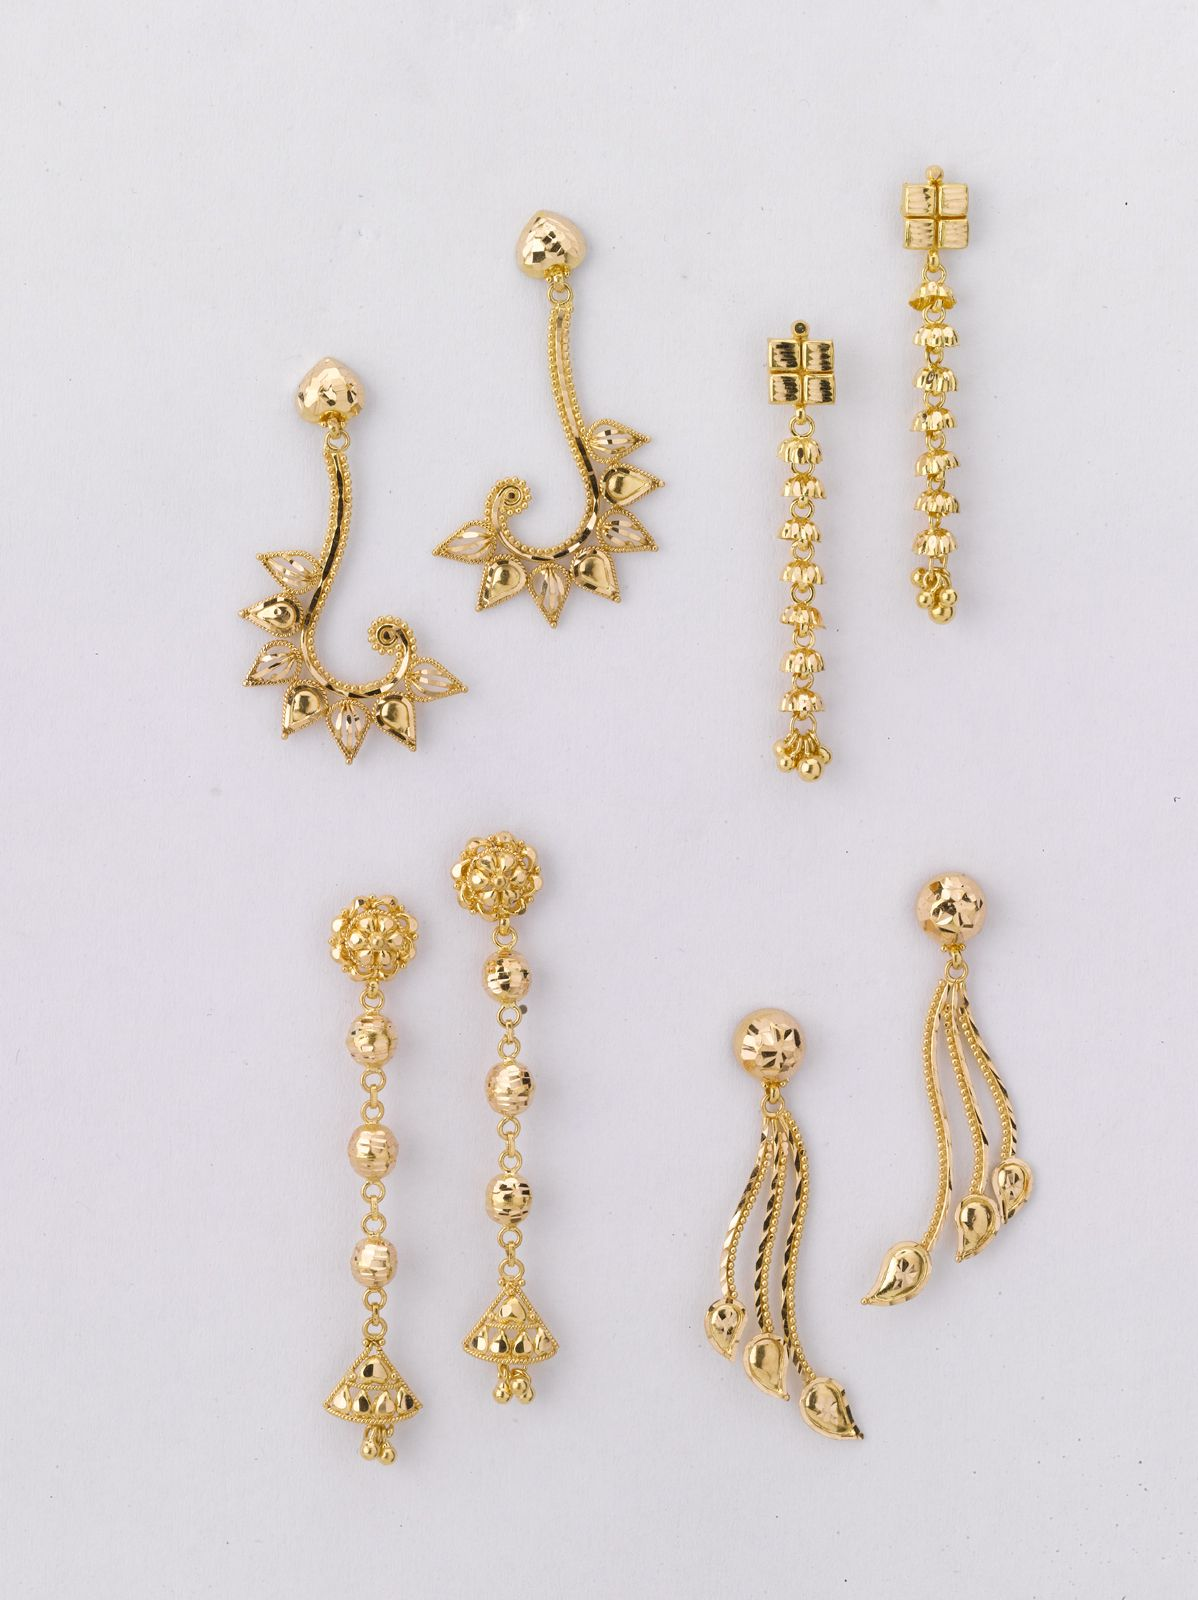 earring 18 prices from left to right a 4 500 gm rs 16100 b